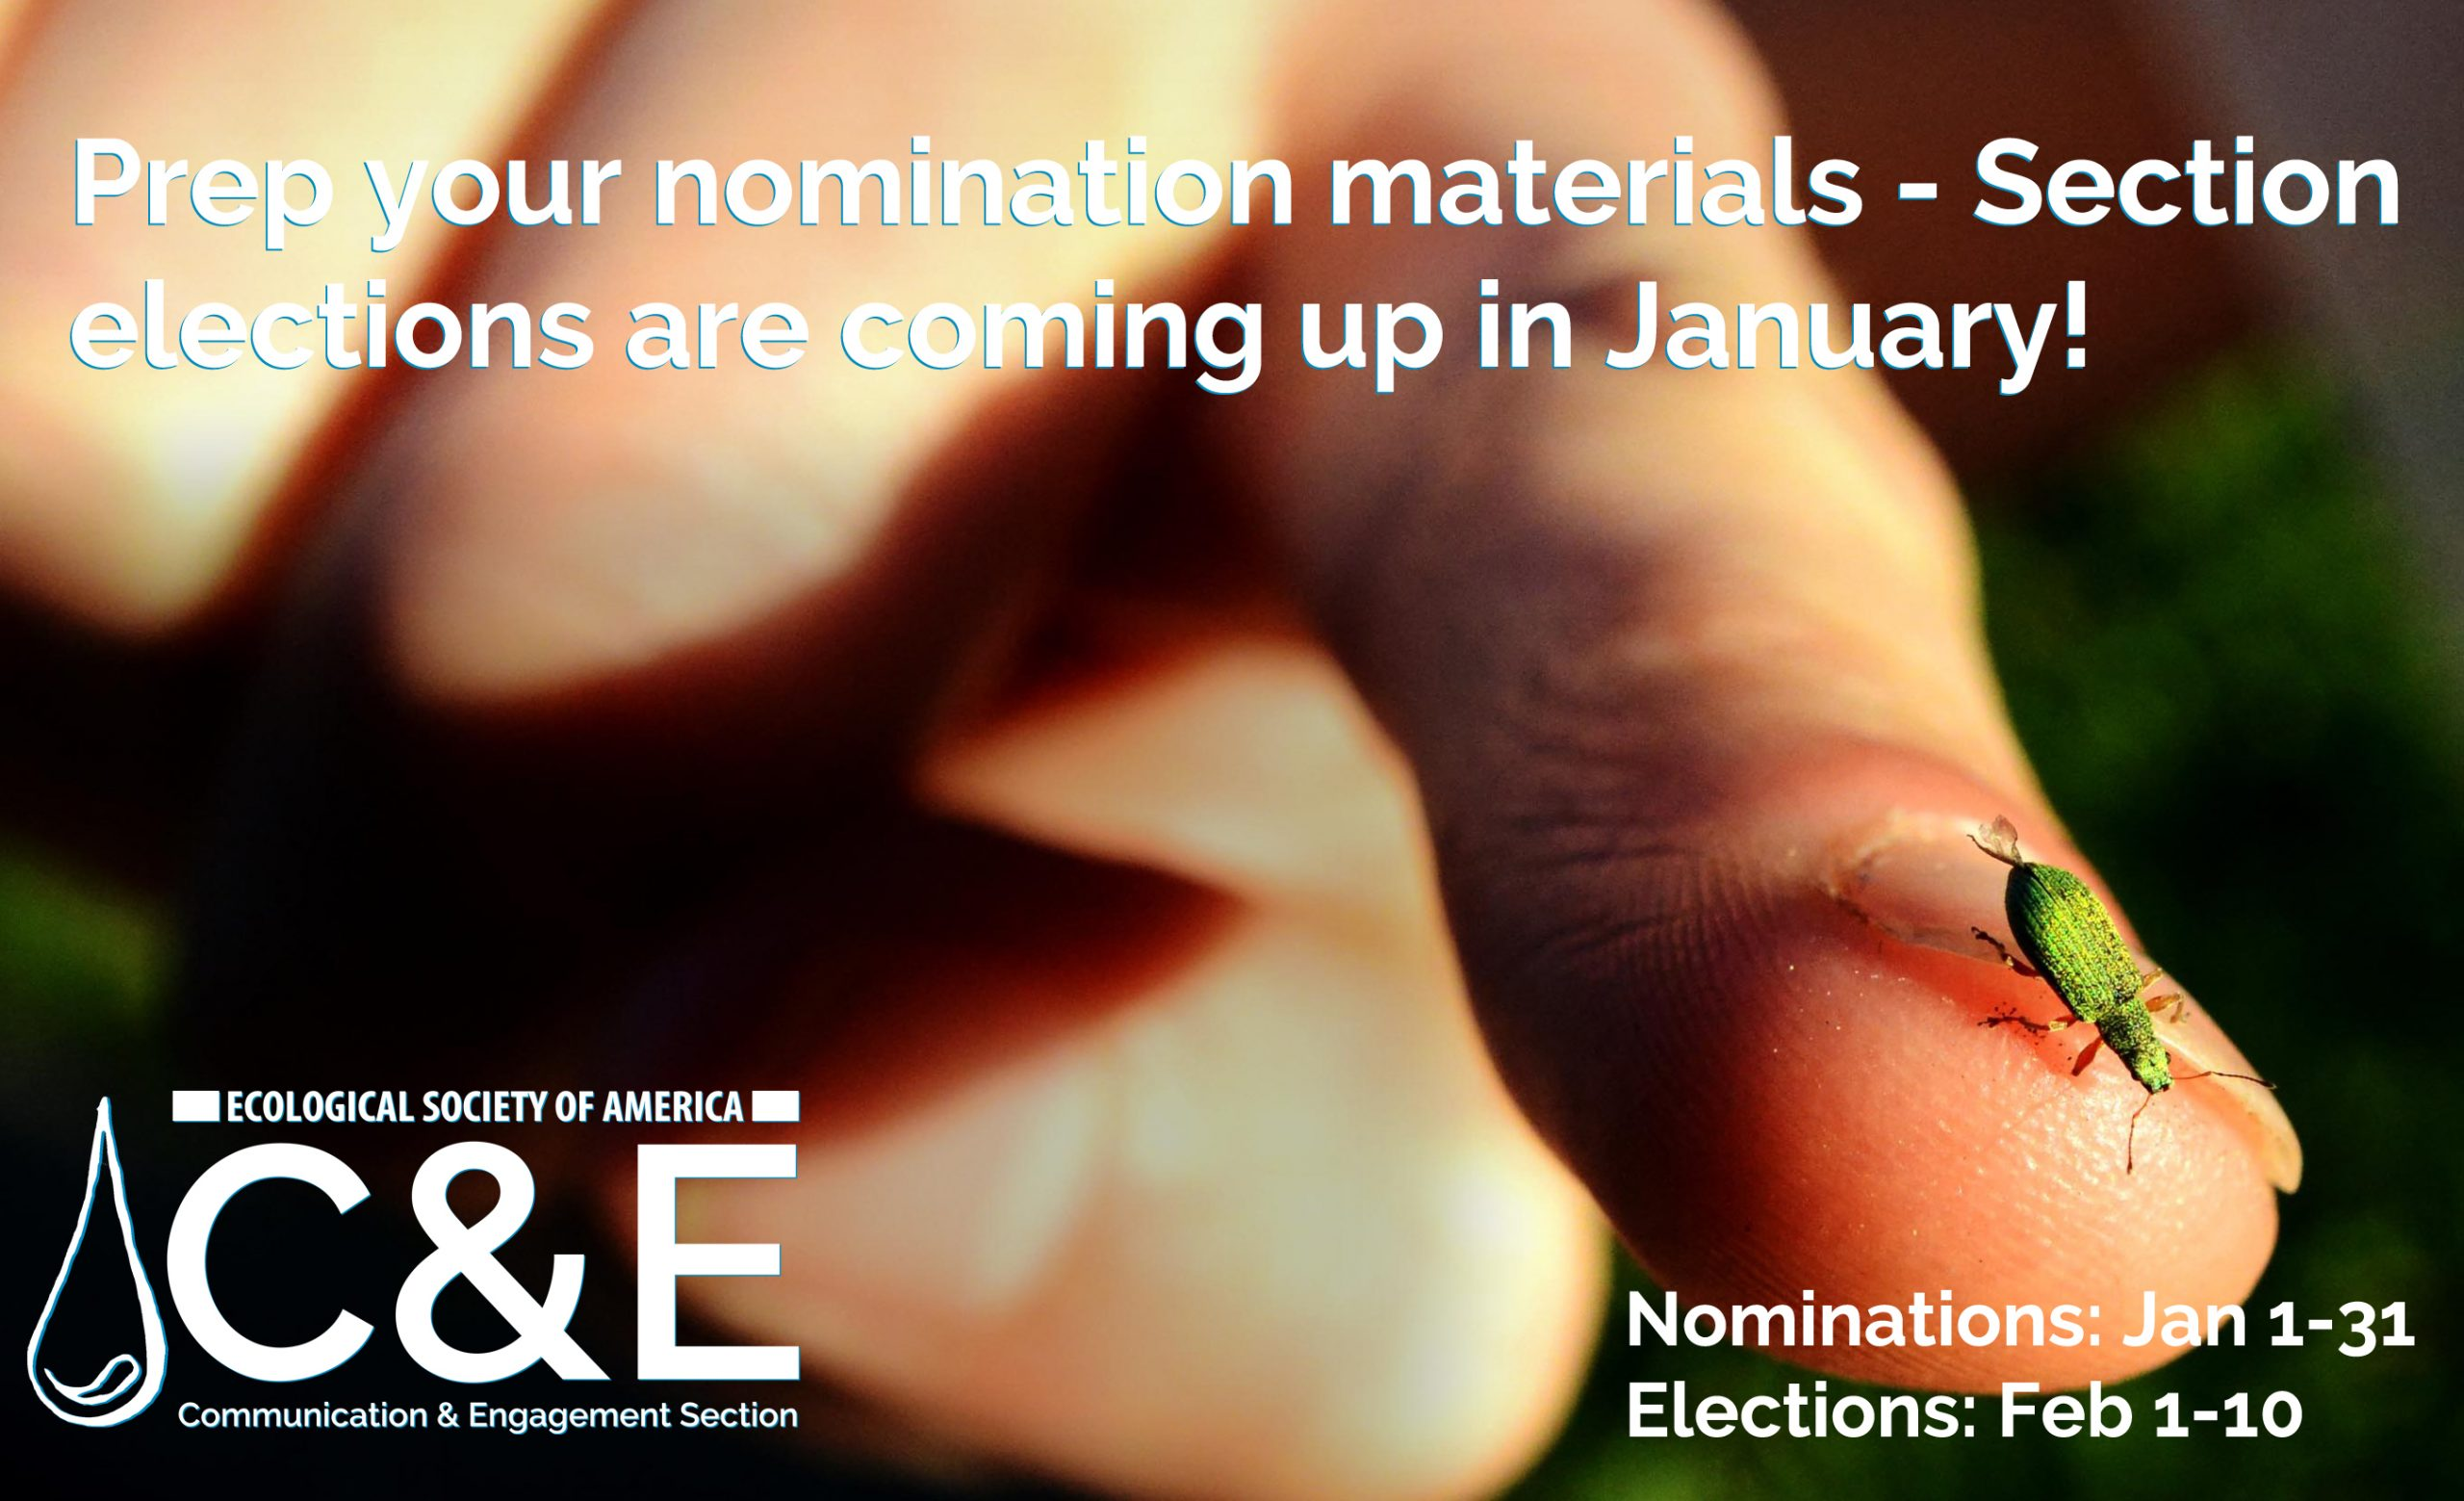 Close-up of a hand, with index finger pointing to camera. On that fingernail perches a small green insect. Text reads: Prep your nomination materials - Section elections are coming up in January. Nominations: Jan 1-31. Elections: Feb 1-10.